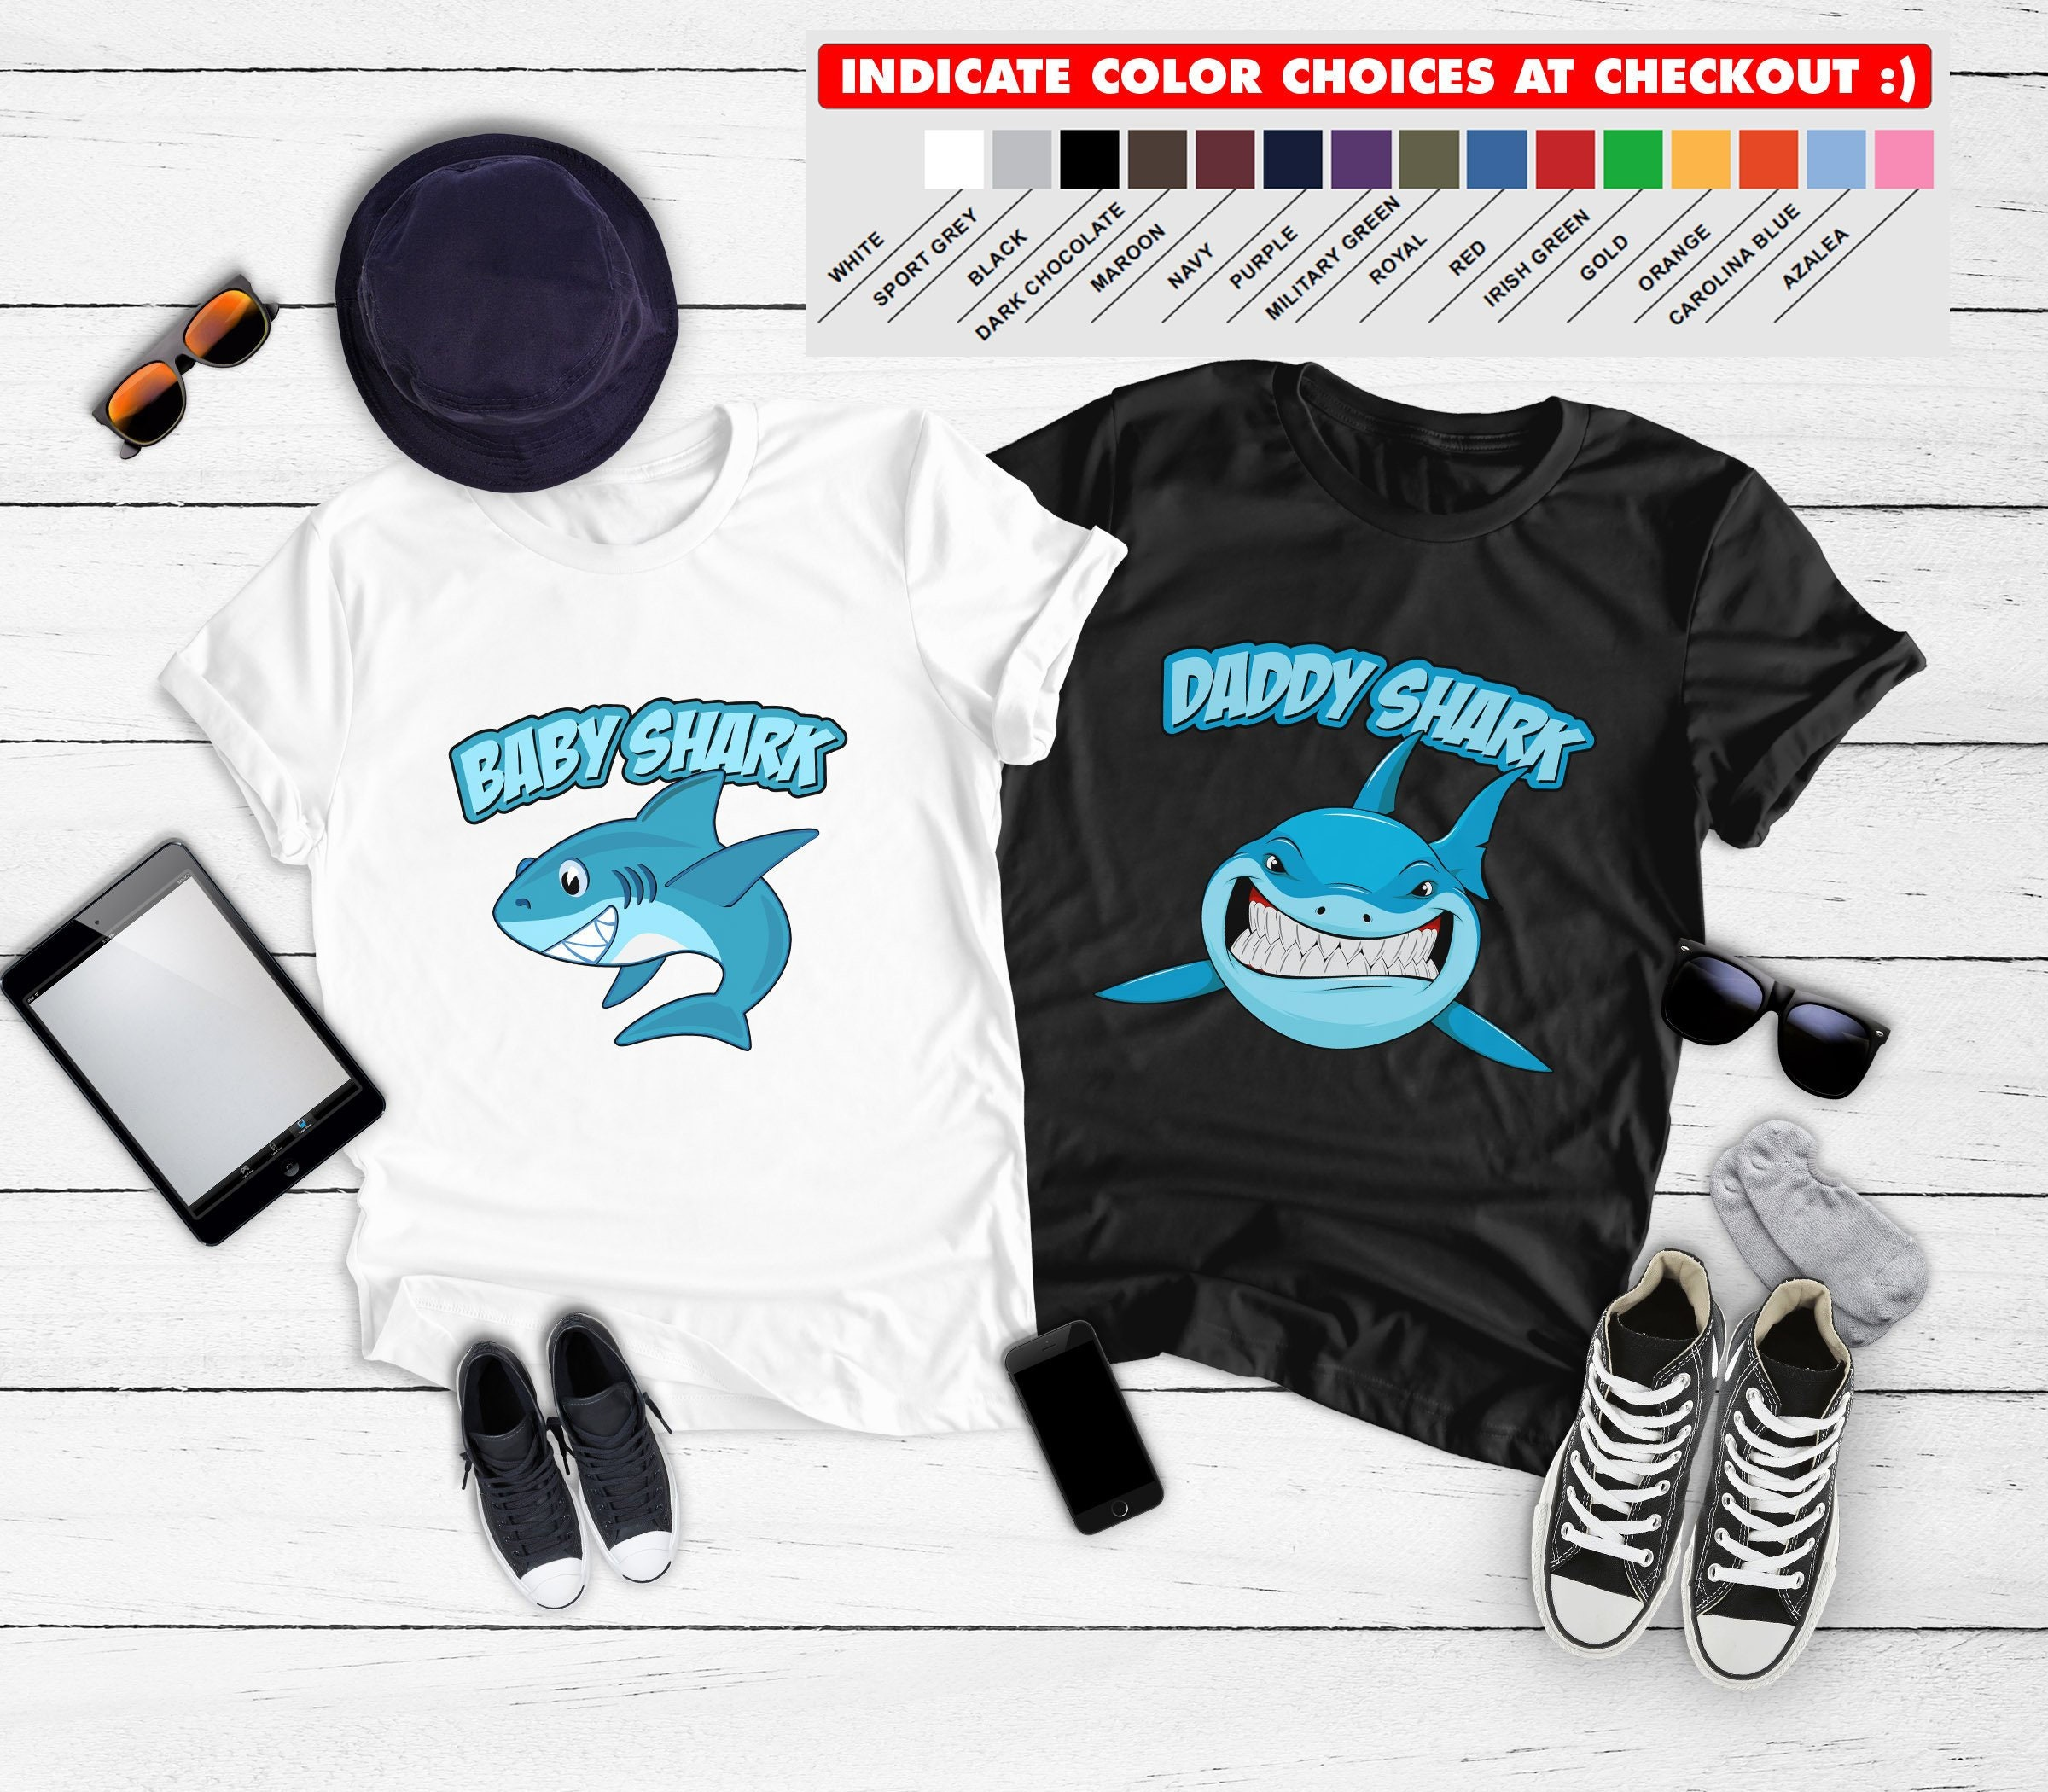 d922891f Father Son Matching Shirts Baby Shark T Shirts Daddy Shark Baby TShirts Dad  And Son Gifts Family Outfits Dad And Baby Boy BBY-001-003